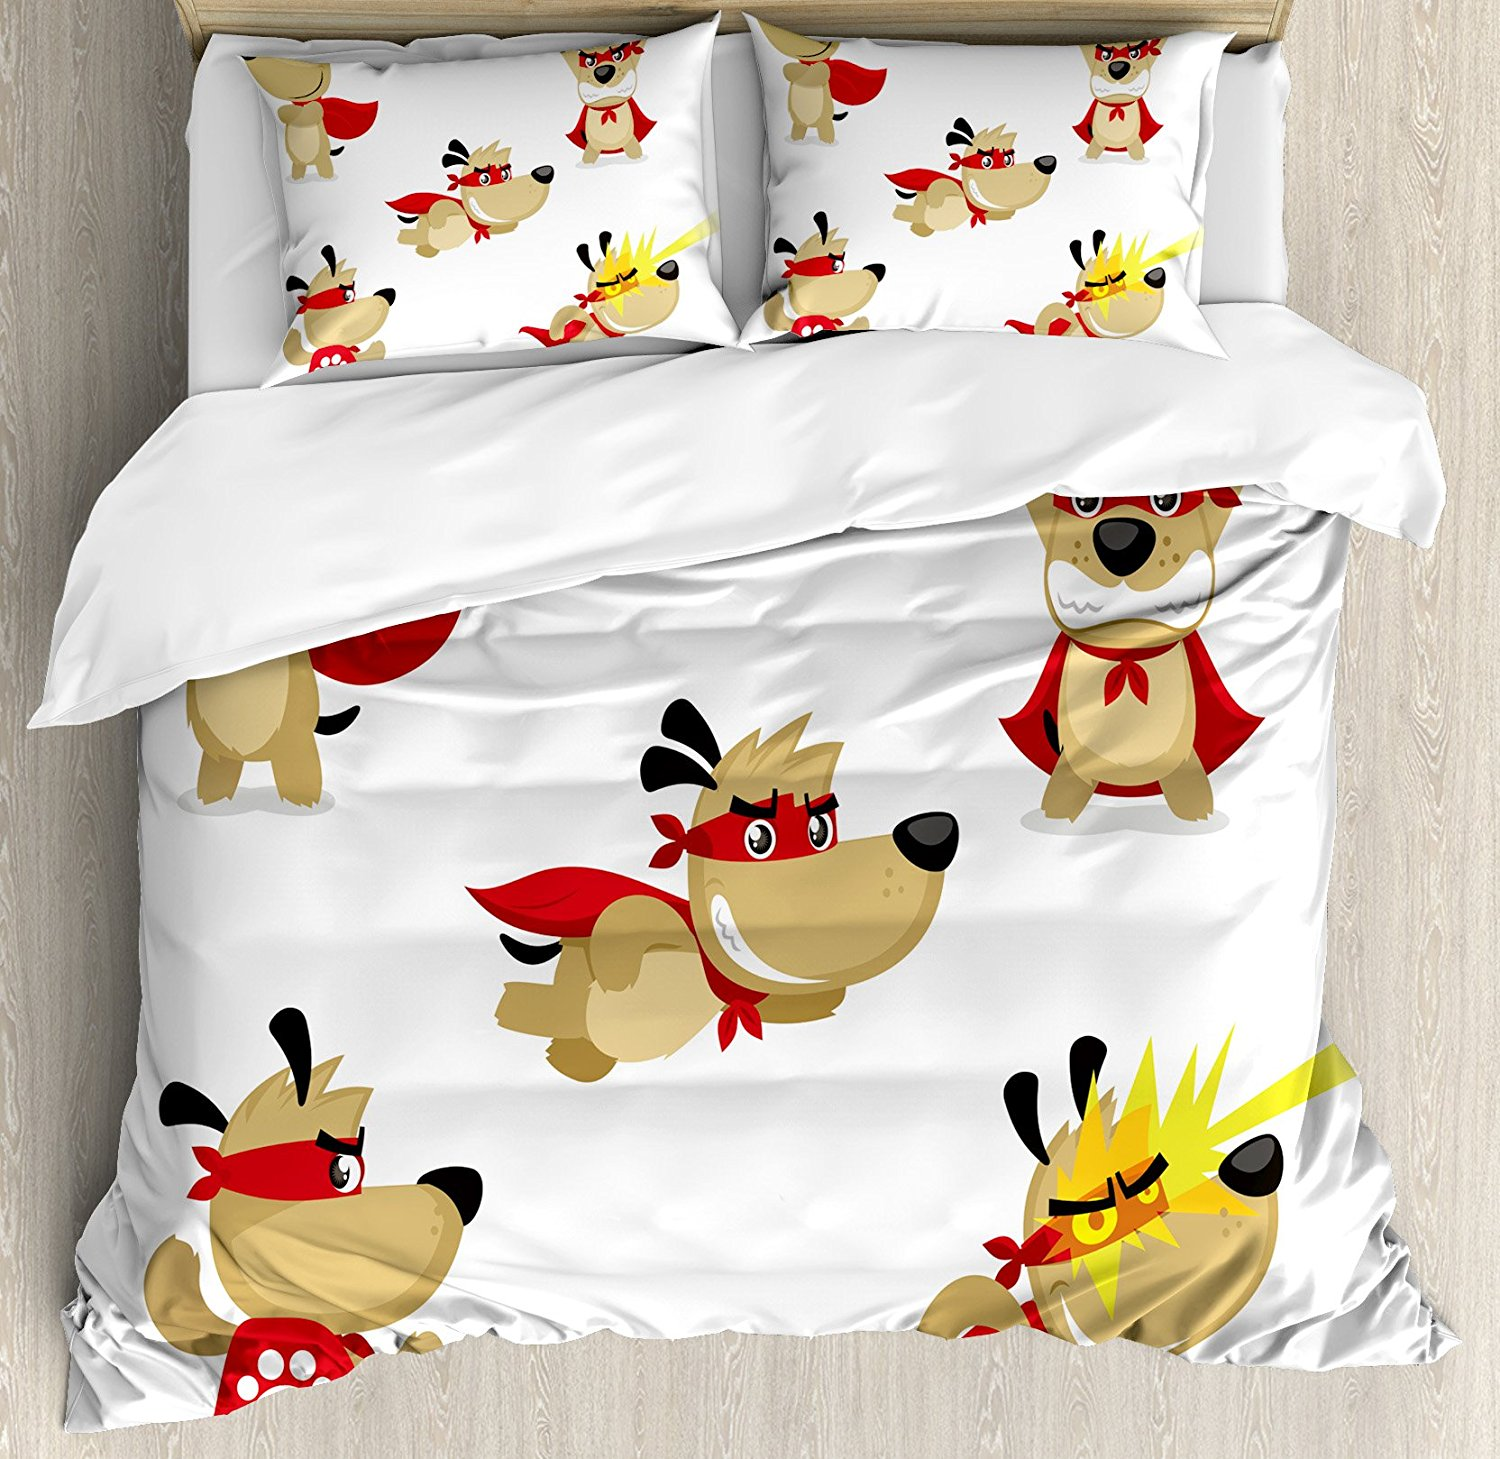 Duvet Cover Set, Superhero Puppy with Paw Costume and Mystic Powers Laser Vision Supreme Talents,4 Piece Bedding Set